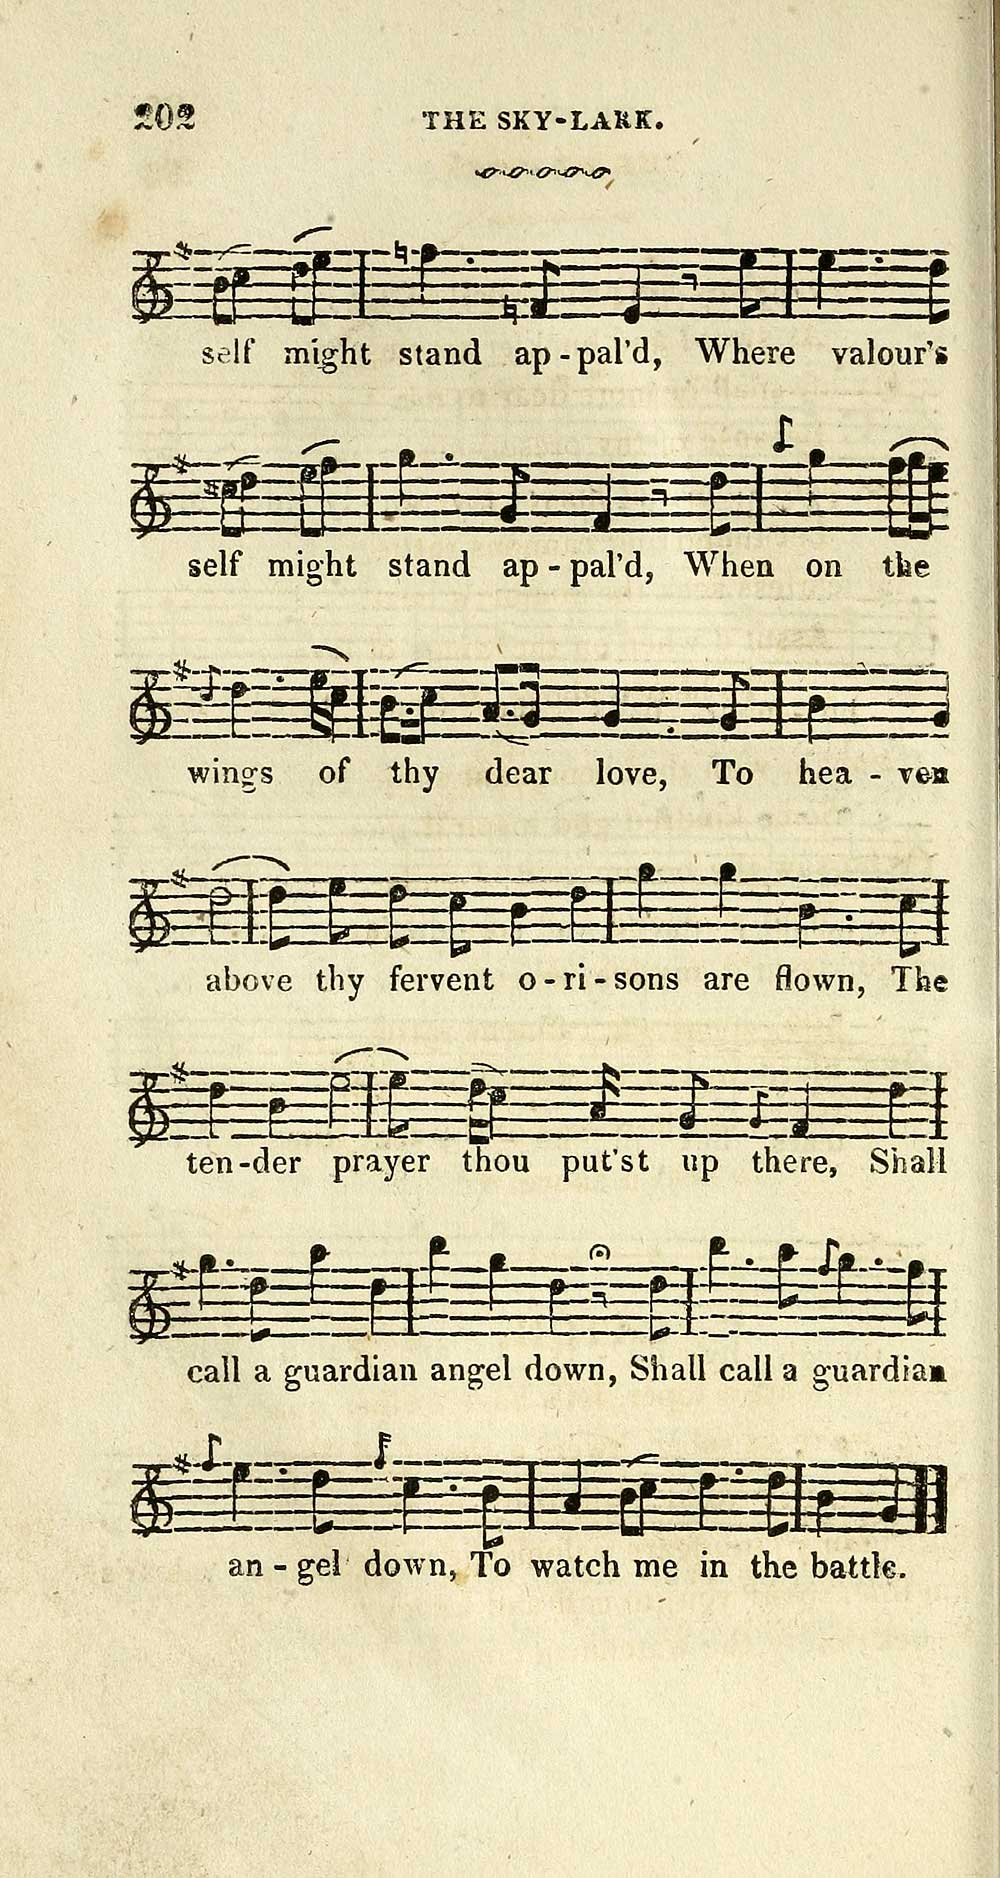 220) Page 202 - Glen Collection of printed music > Printed music